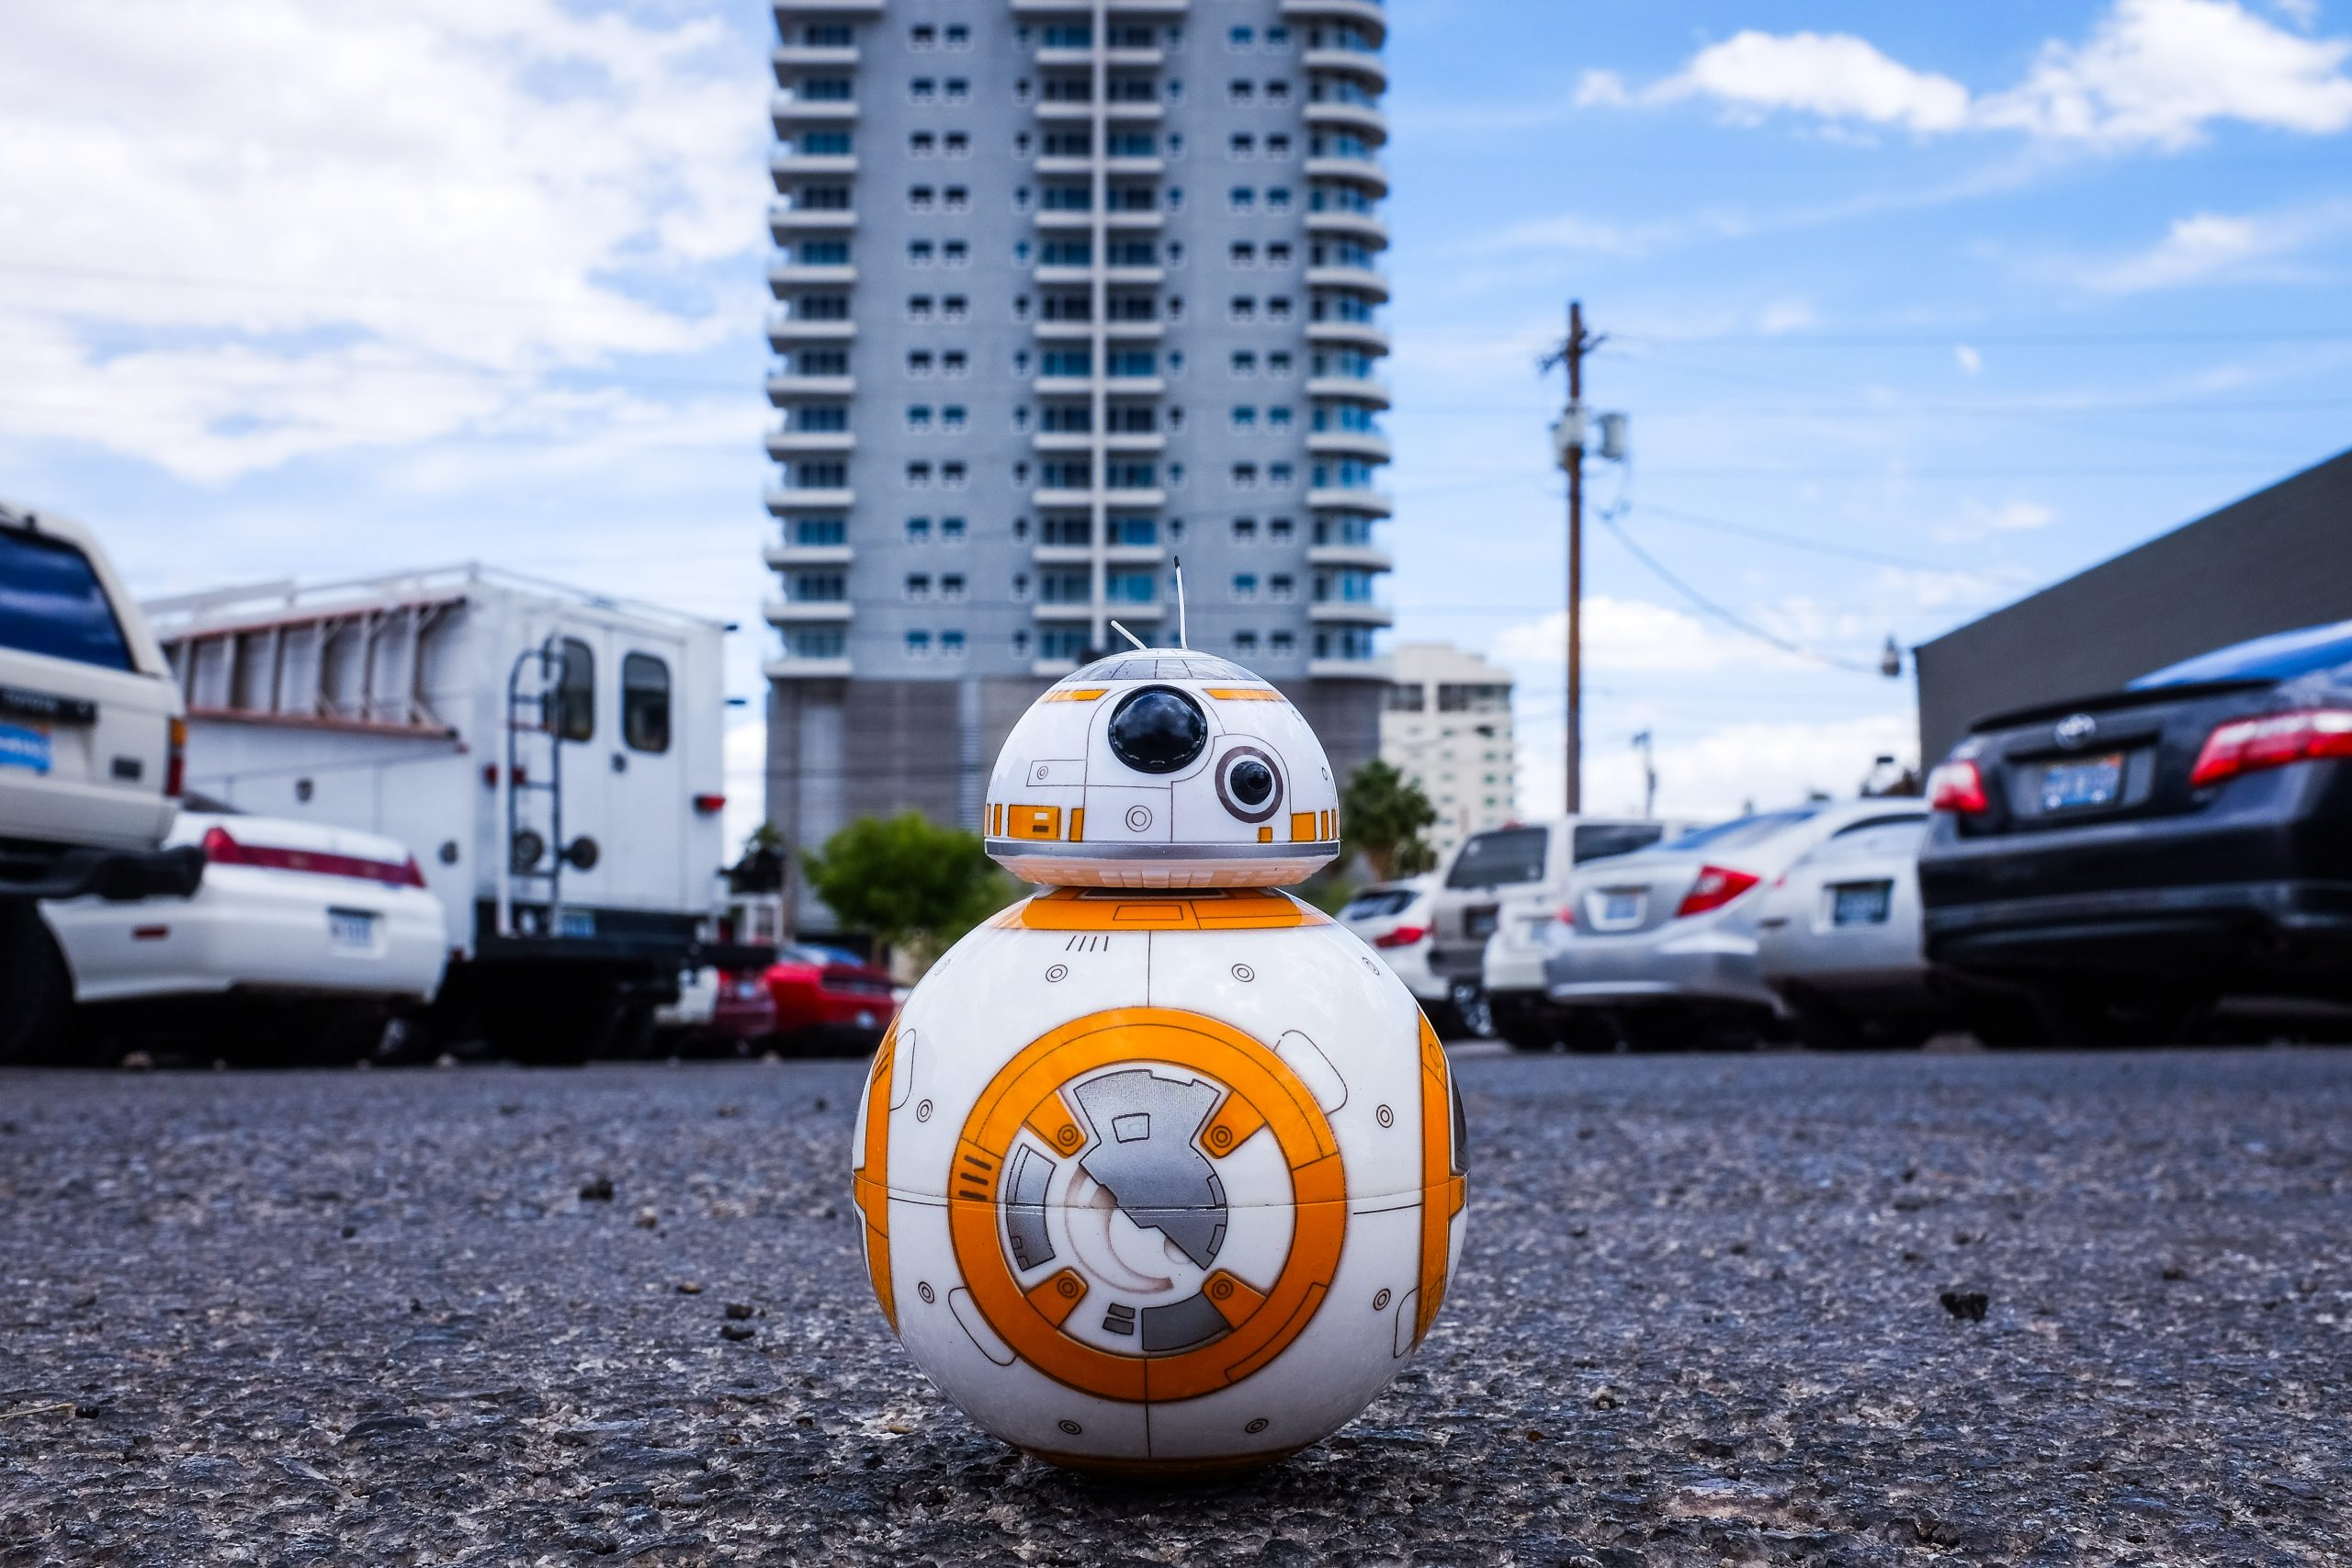 bb8 droid in car park